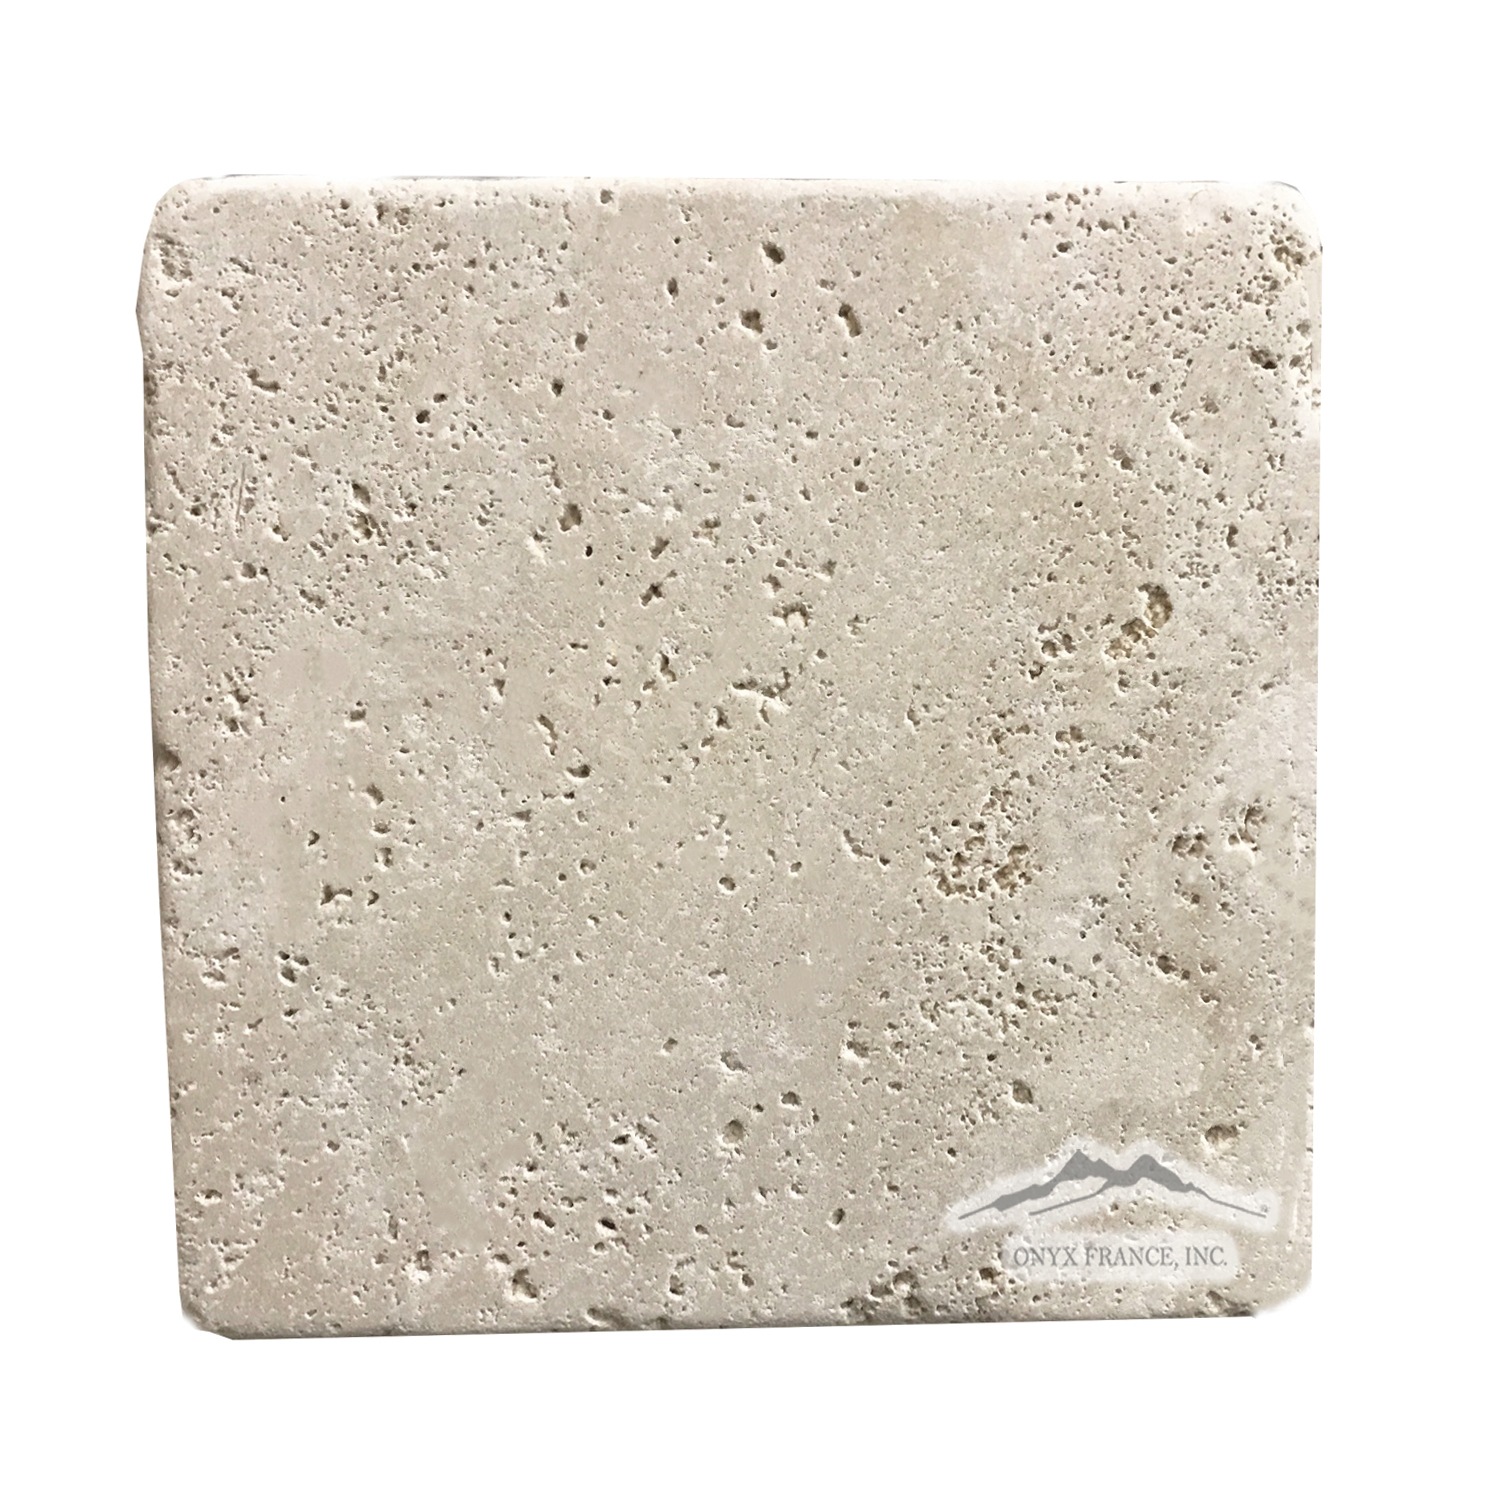 "Beige Antique Travertine 6"" x 6"" Tumbled"